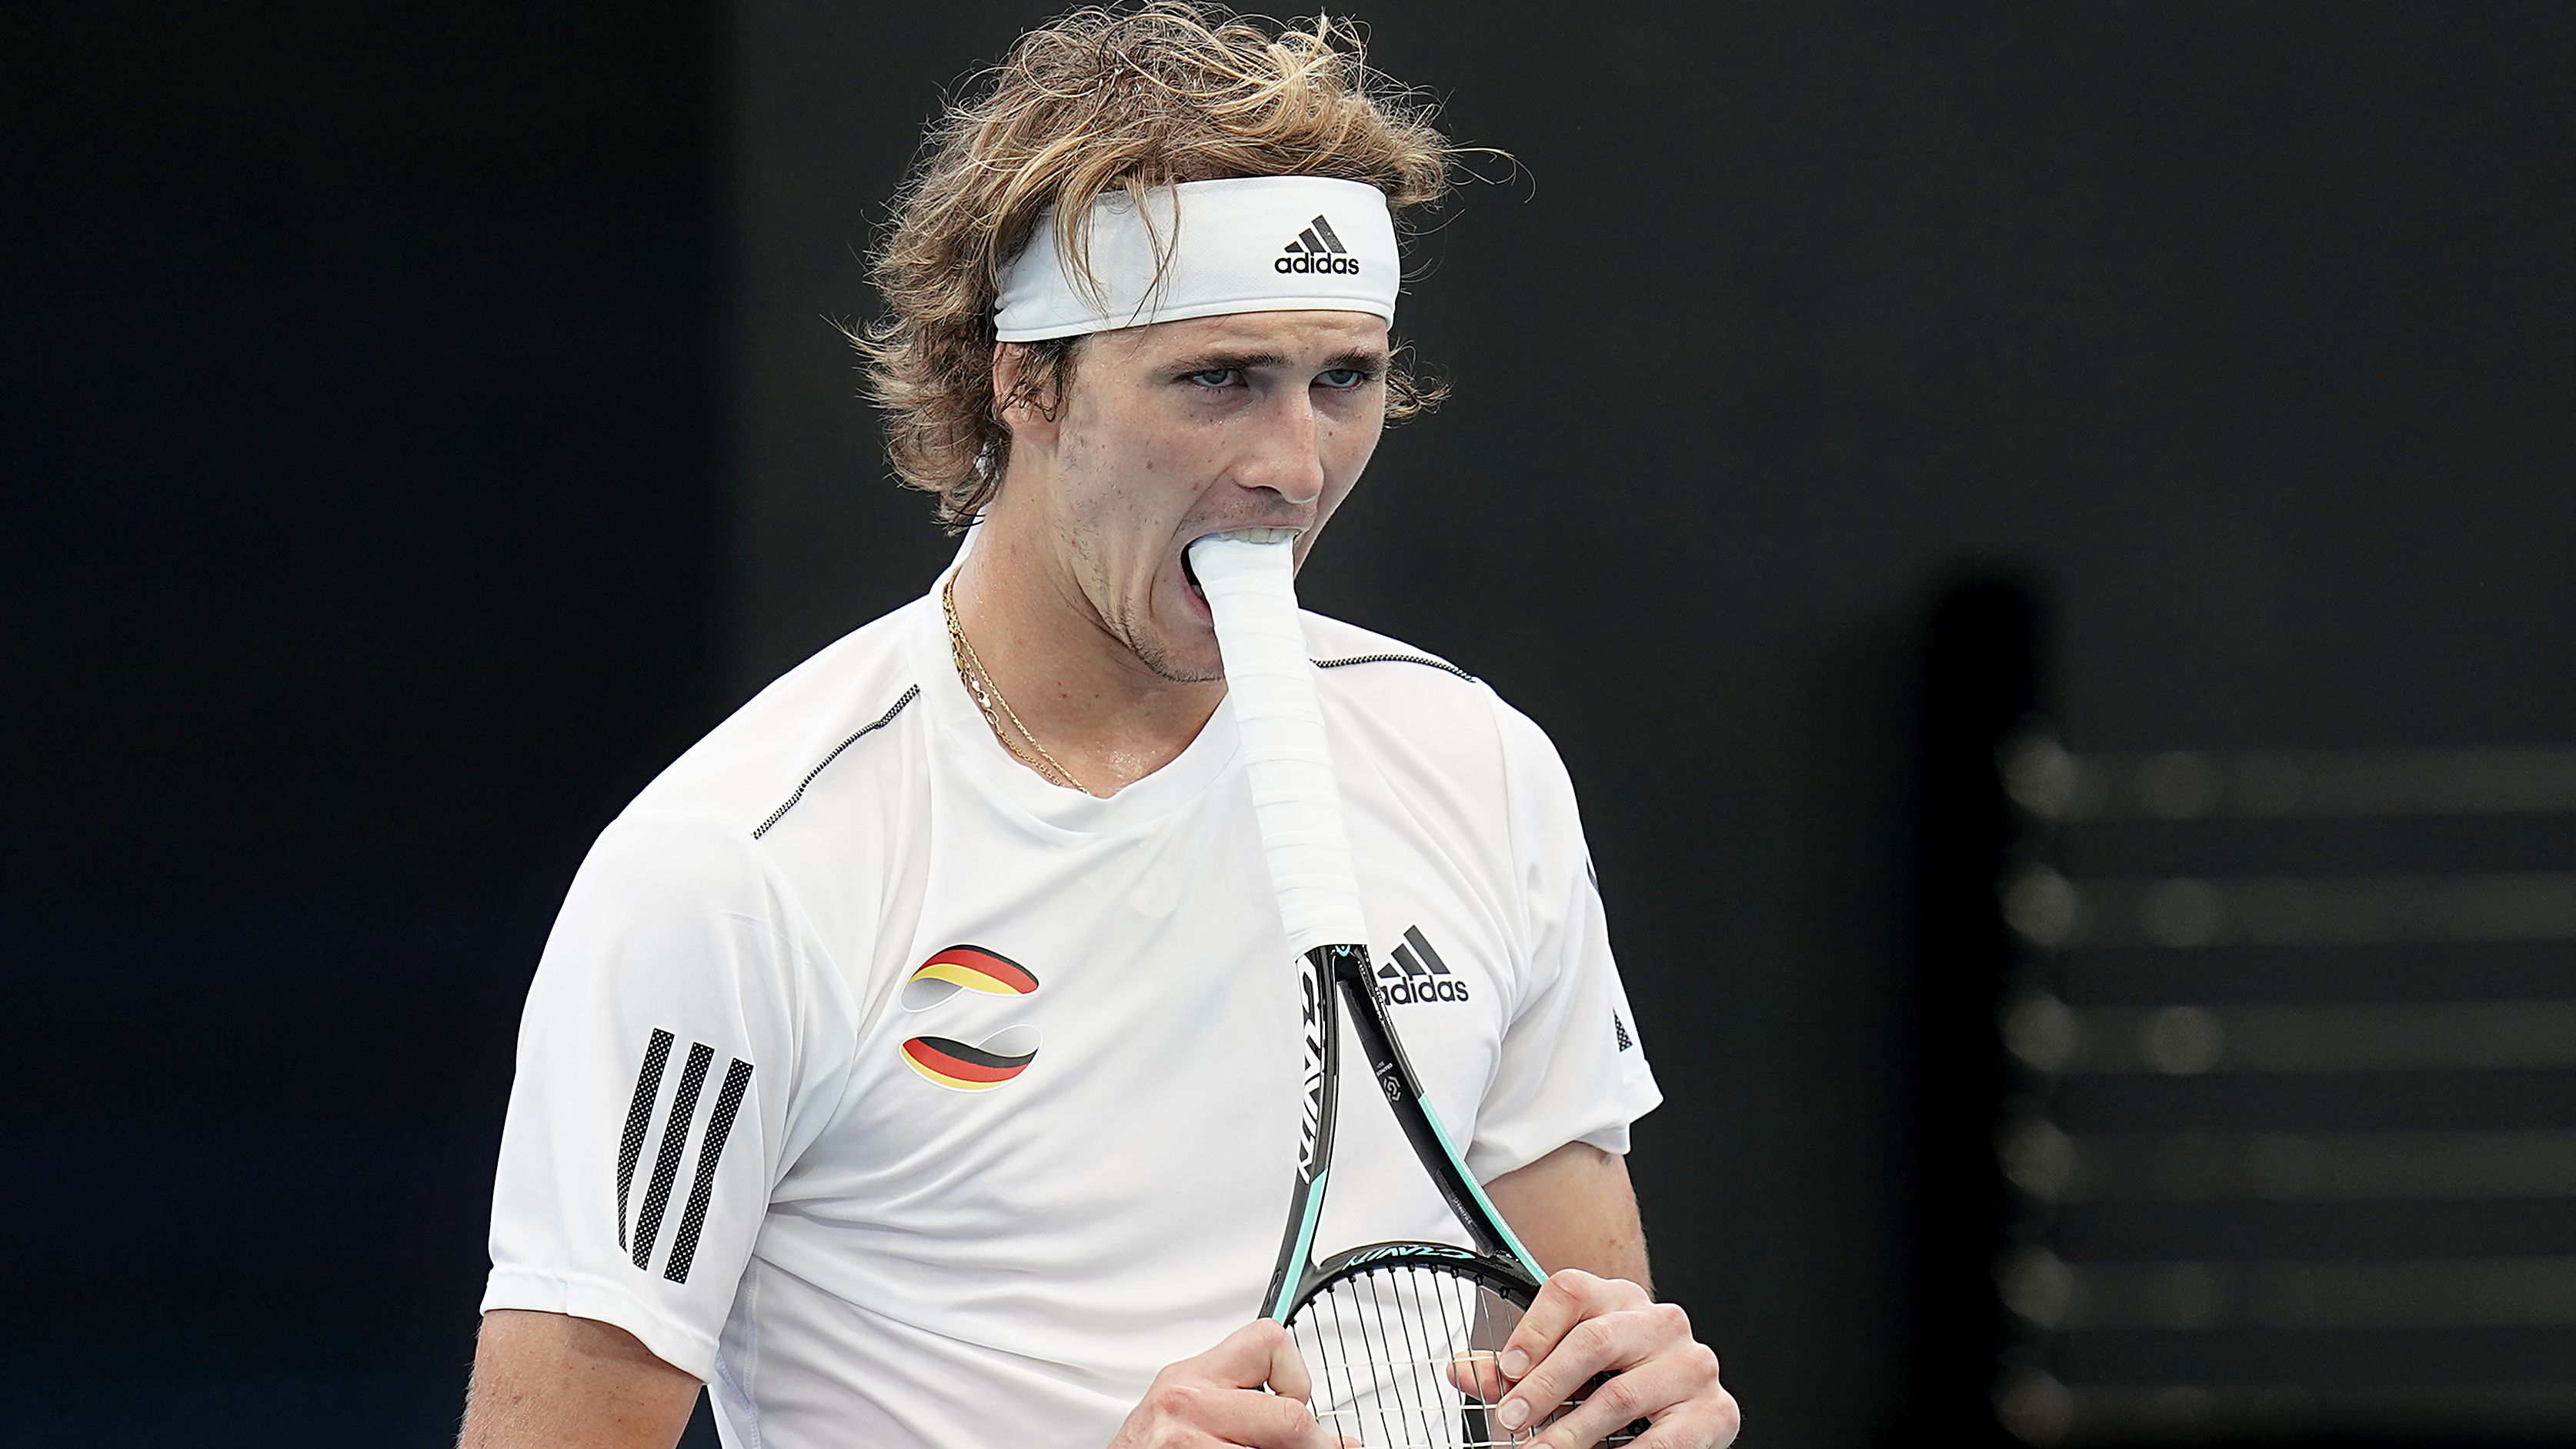 'Telling' response from Alexander Zverev after sizzling troll from Belinda Bencic